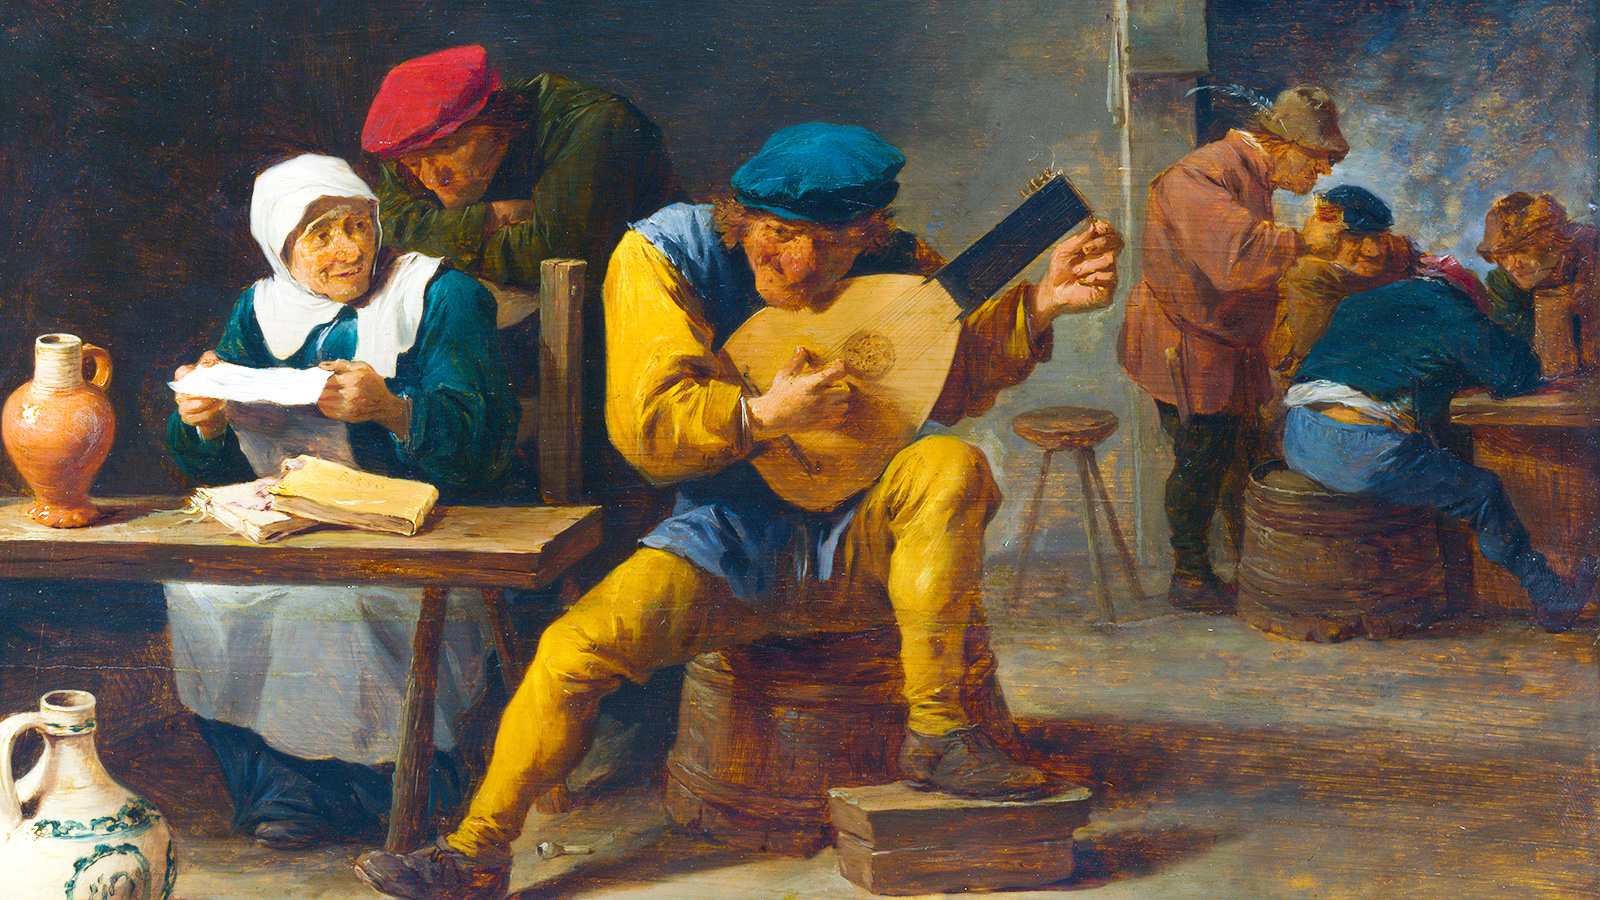 The average American works more hours than a medieval peasant